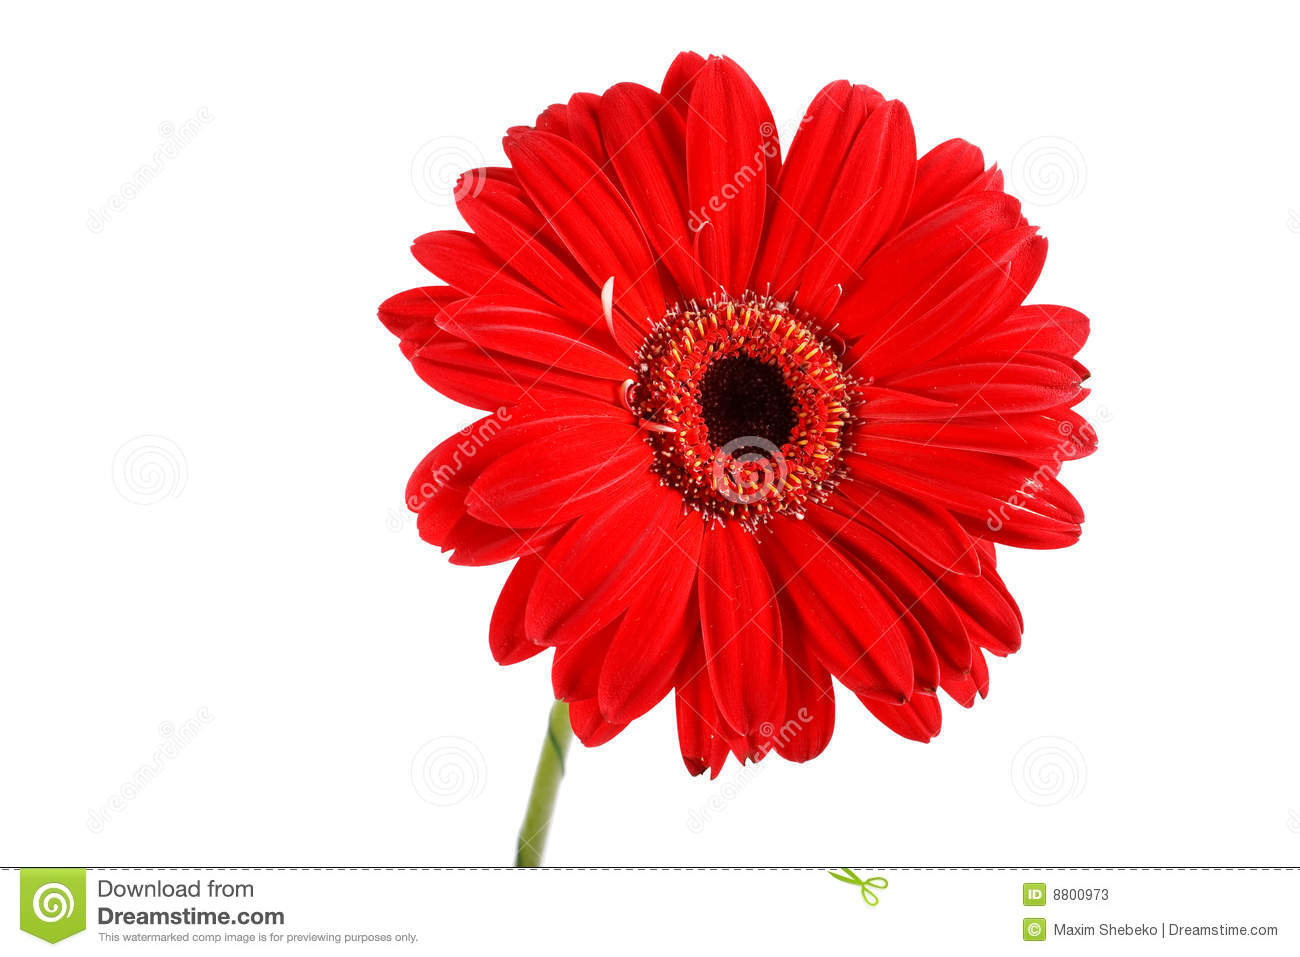 Beautiful red flower stock image image of background 8800973 beautiful red flower izmirmasajfo Choice Image